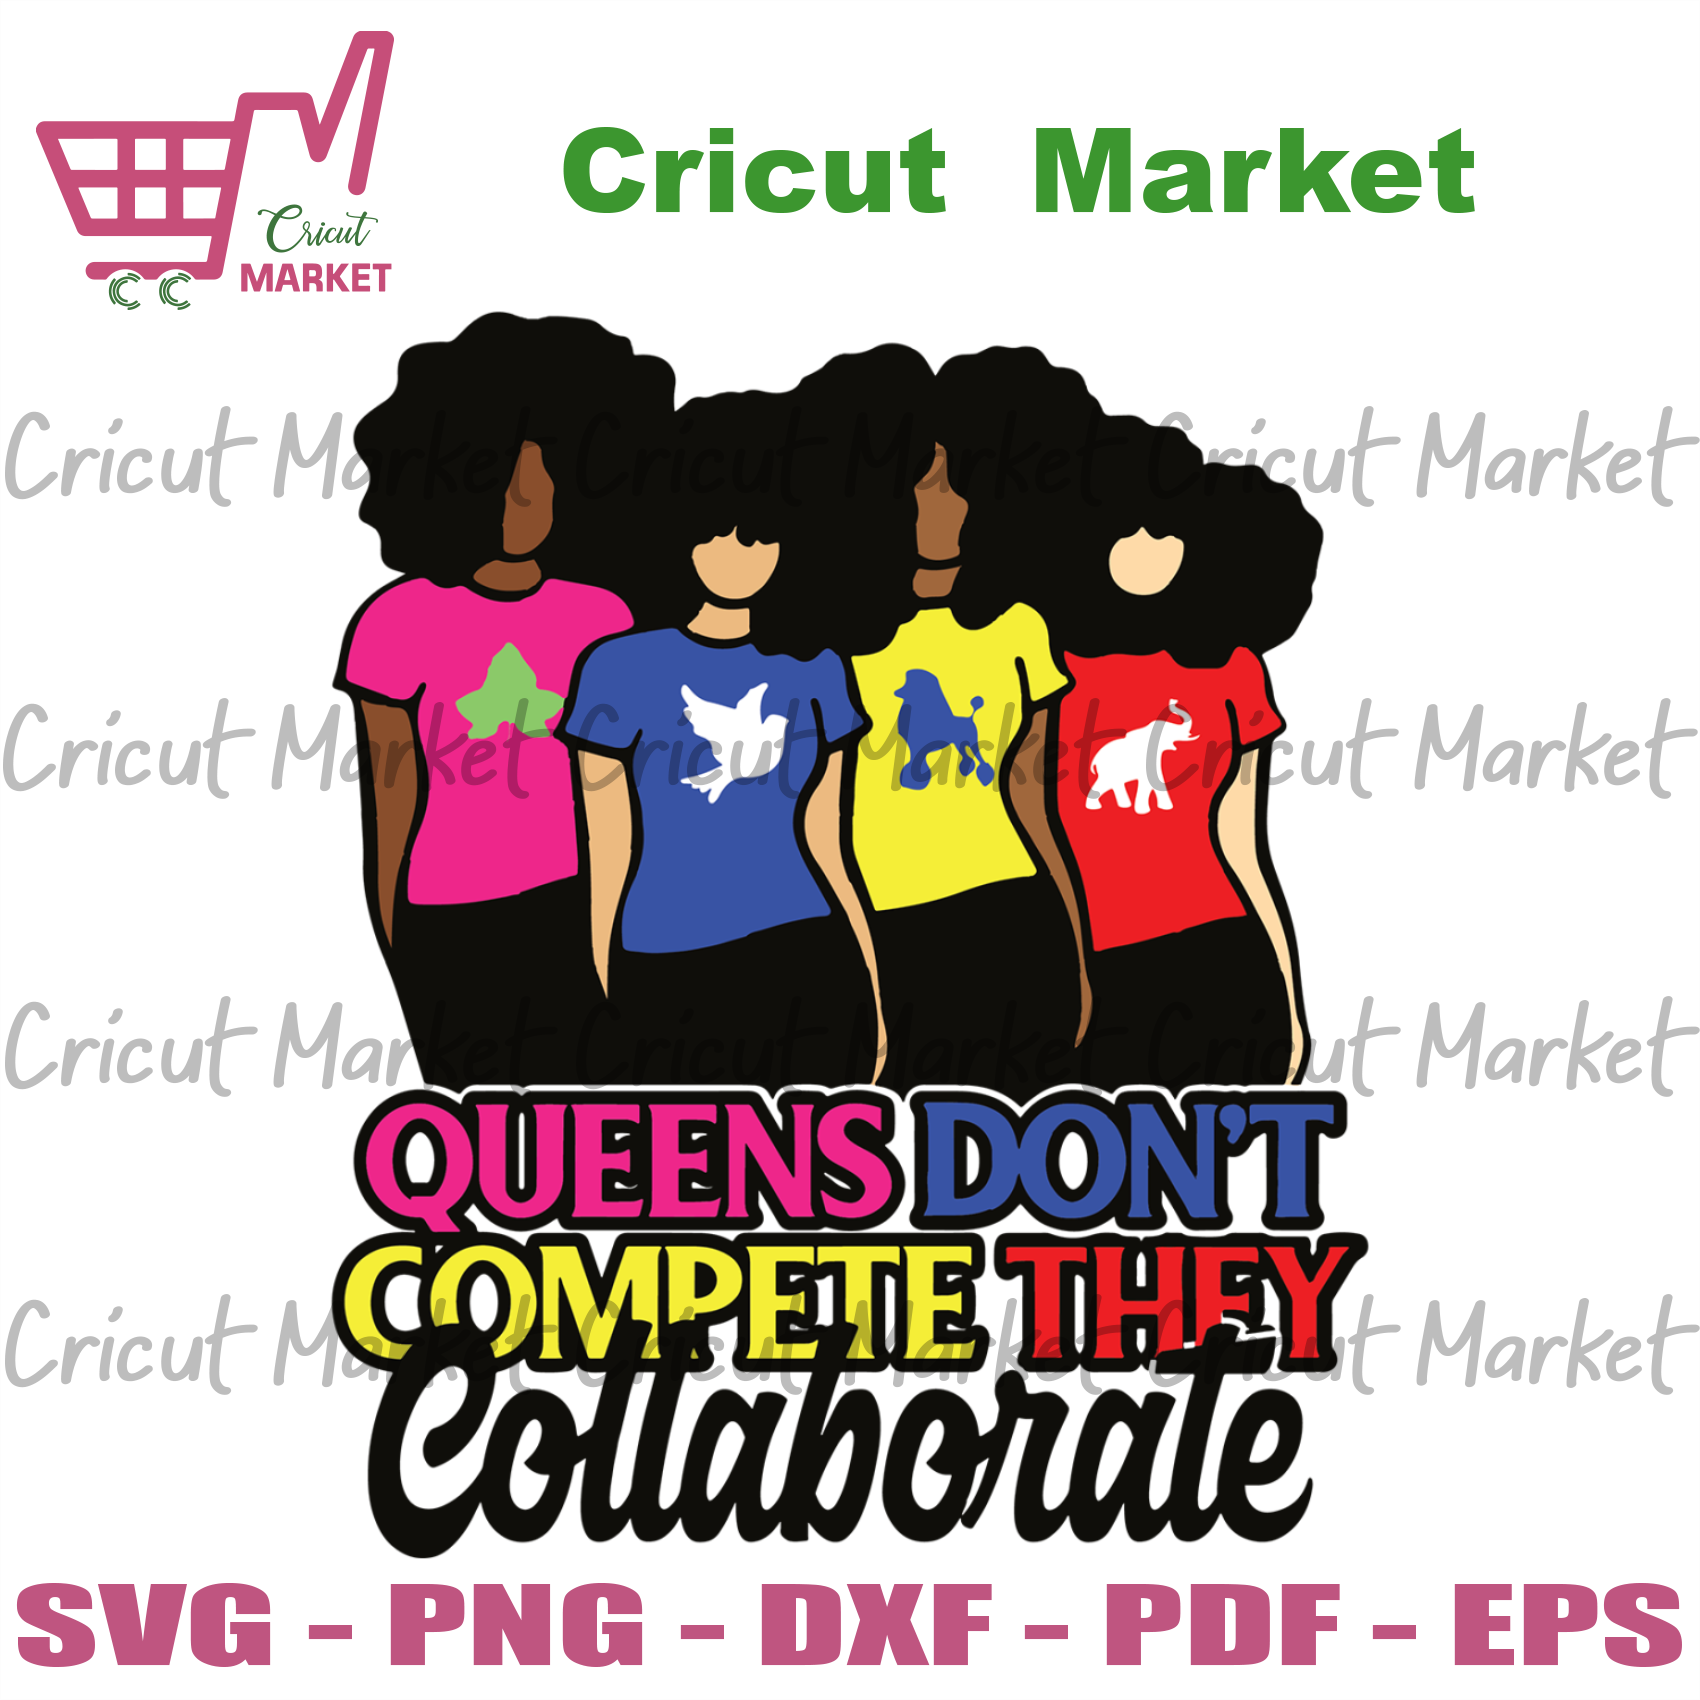 Queens Don't Compete They Collaborate, Black Girls Magic, Black Woman Svg, Black Queen Svg, Black Woman, Black History Svg, Black Girls Svg, Melanin Queen Svg, African Queen Svg, African Girl